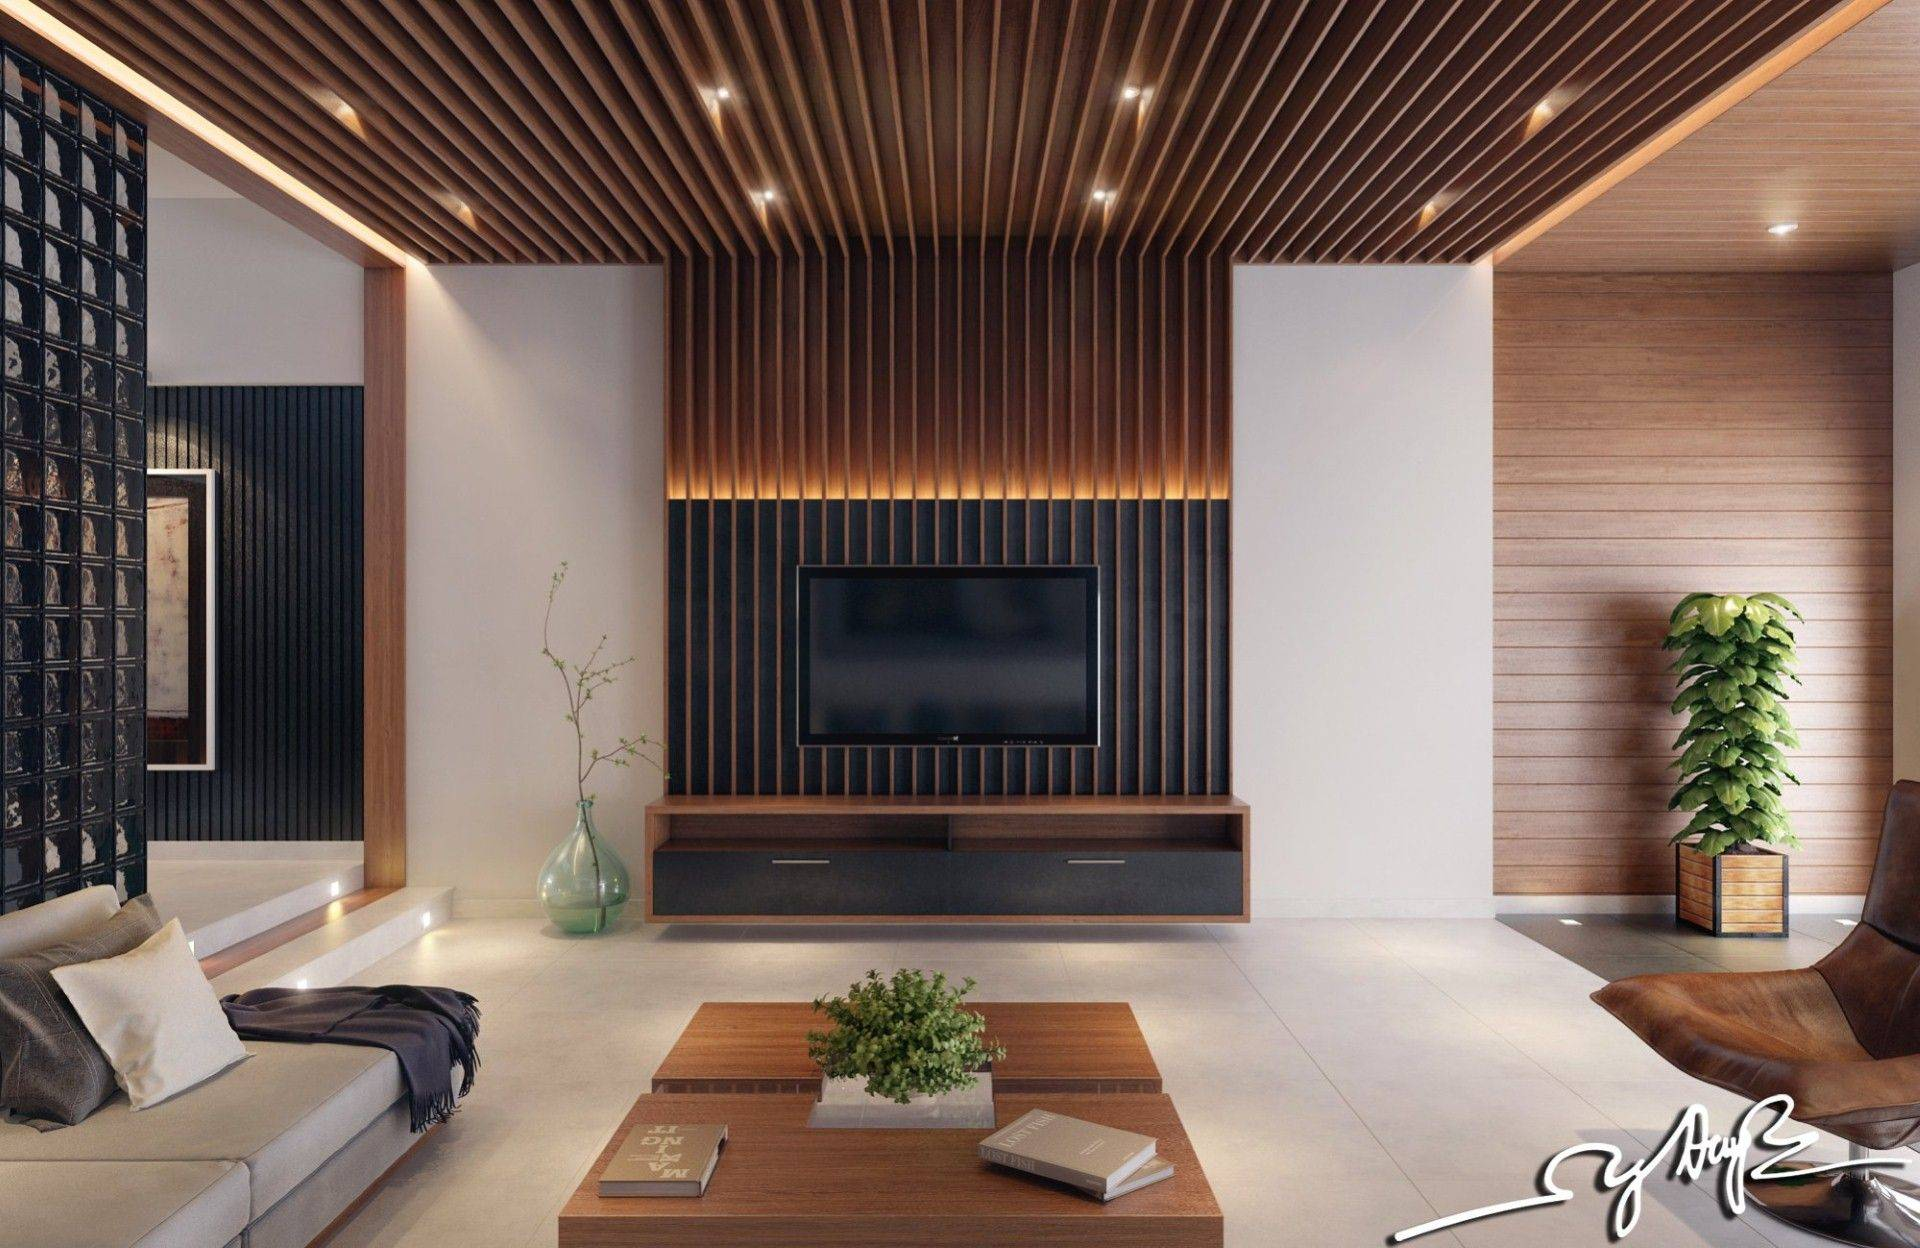 Remarkable How to Decorate A Wall Unit Best Of Quite Wood Wall Paneling Interior with Home Designs Sets and